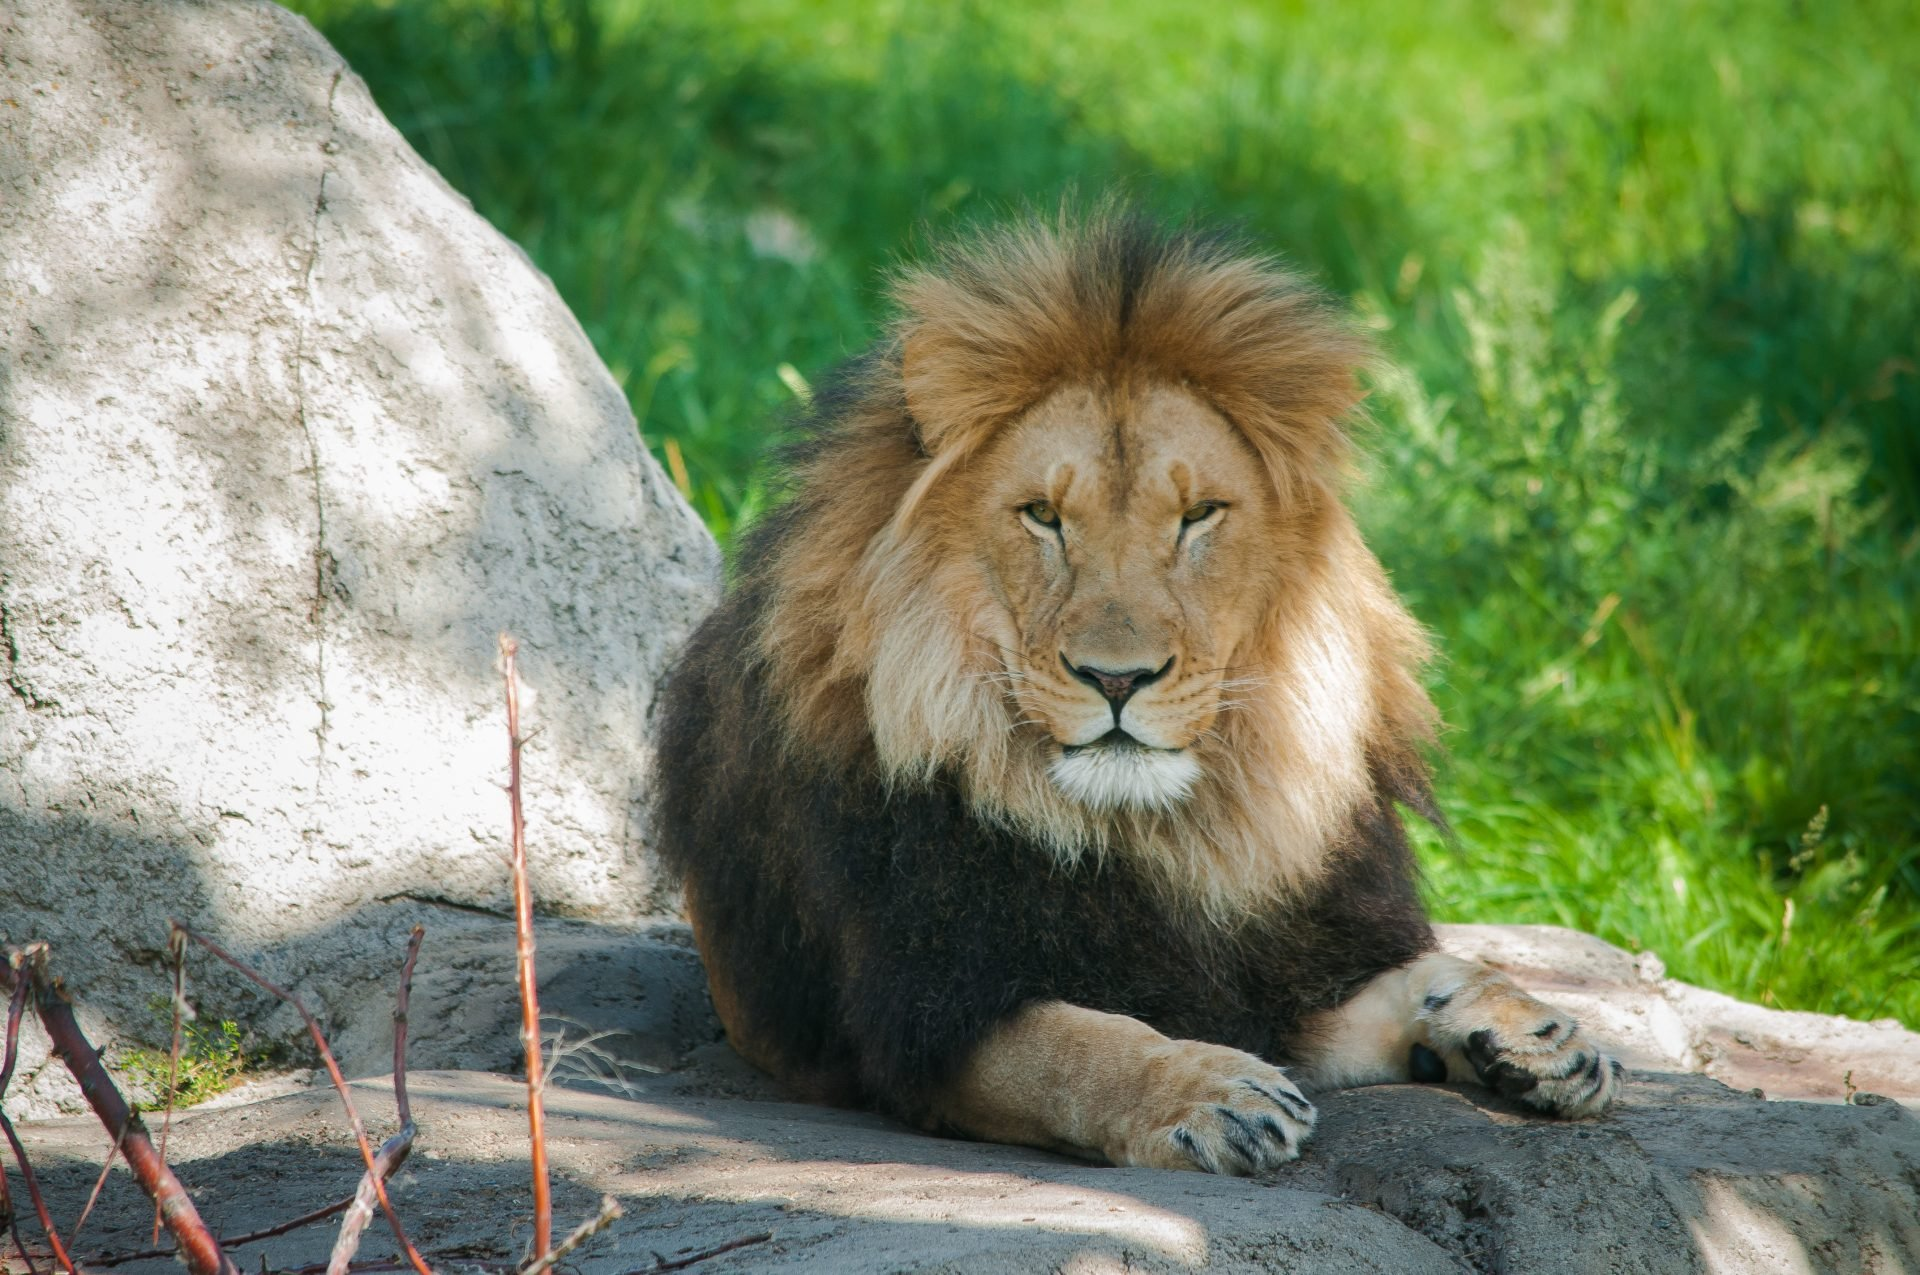 A Lion at the London Zoo